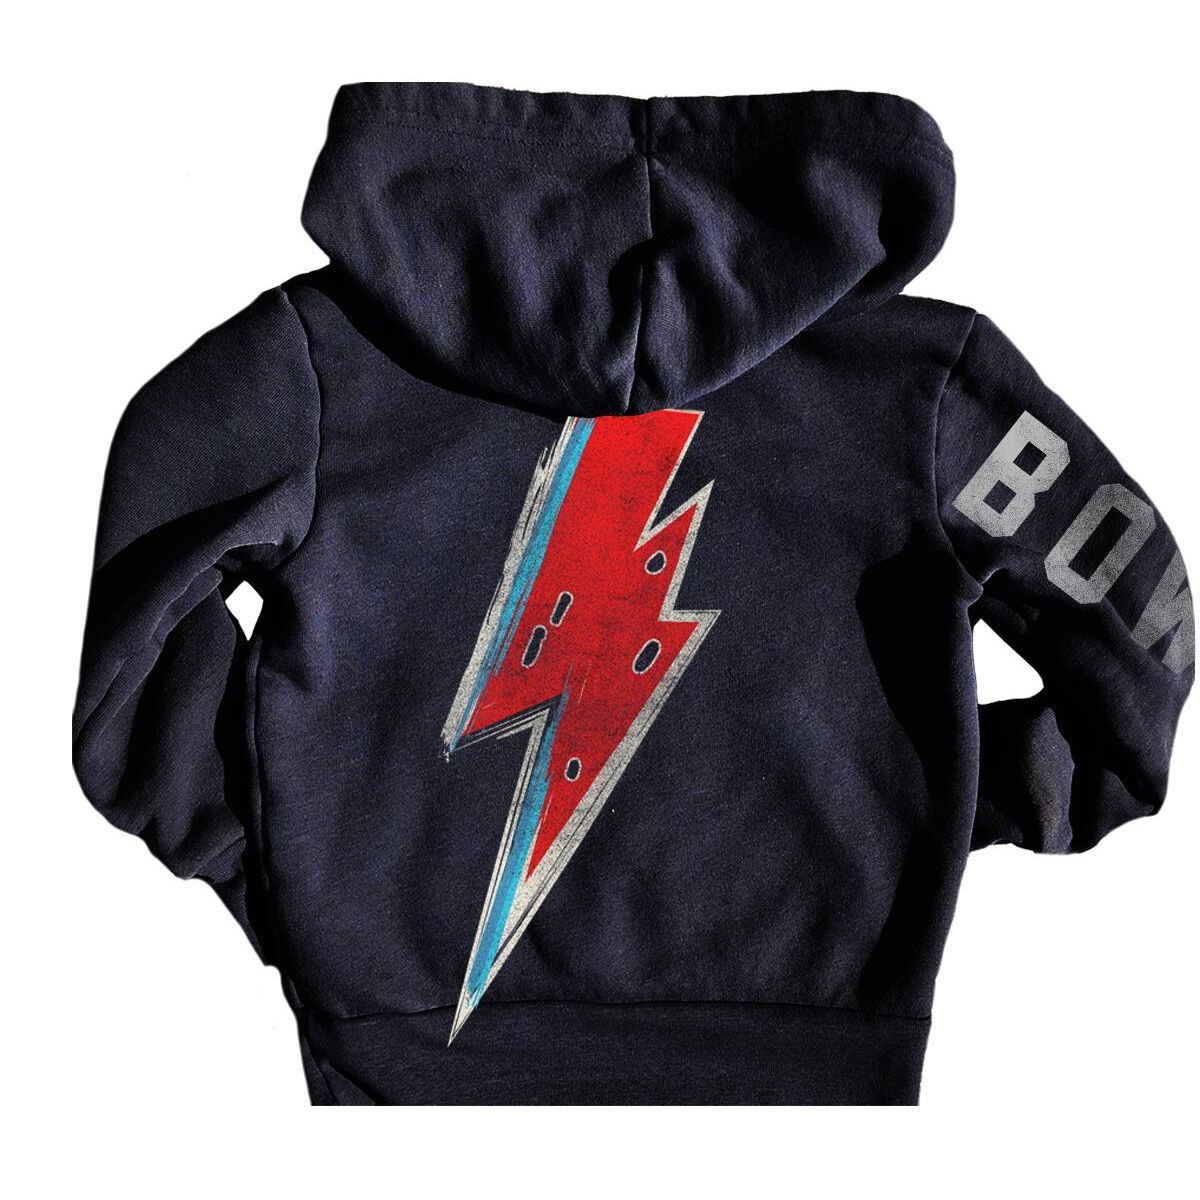 David Bowie Graphic Bolt Hoody